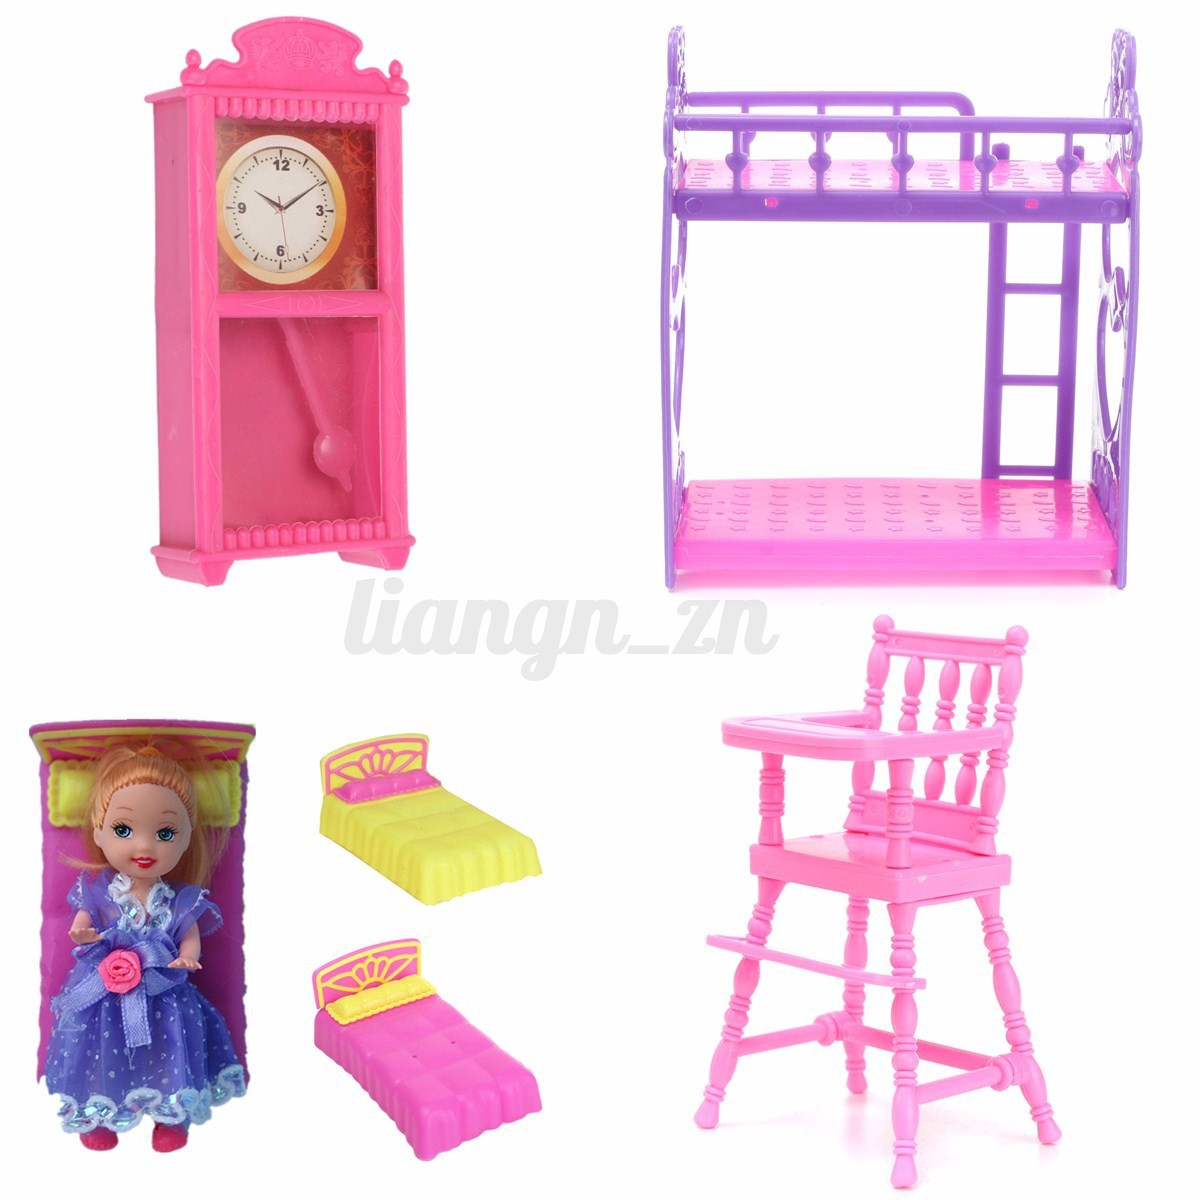 maison poup e meuble chaise chambre lit horloge barbie accessoires diy dollhouse eur 1 83. Black Bedroom Furniture Sets. Home Design Ideas